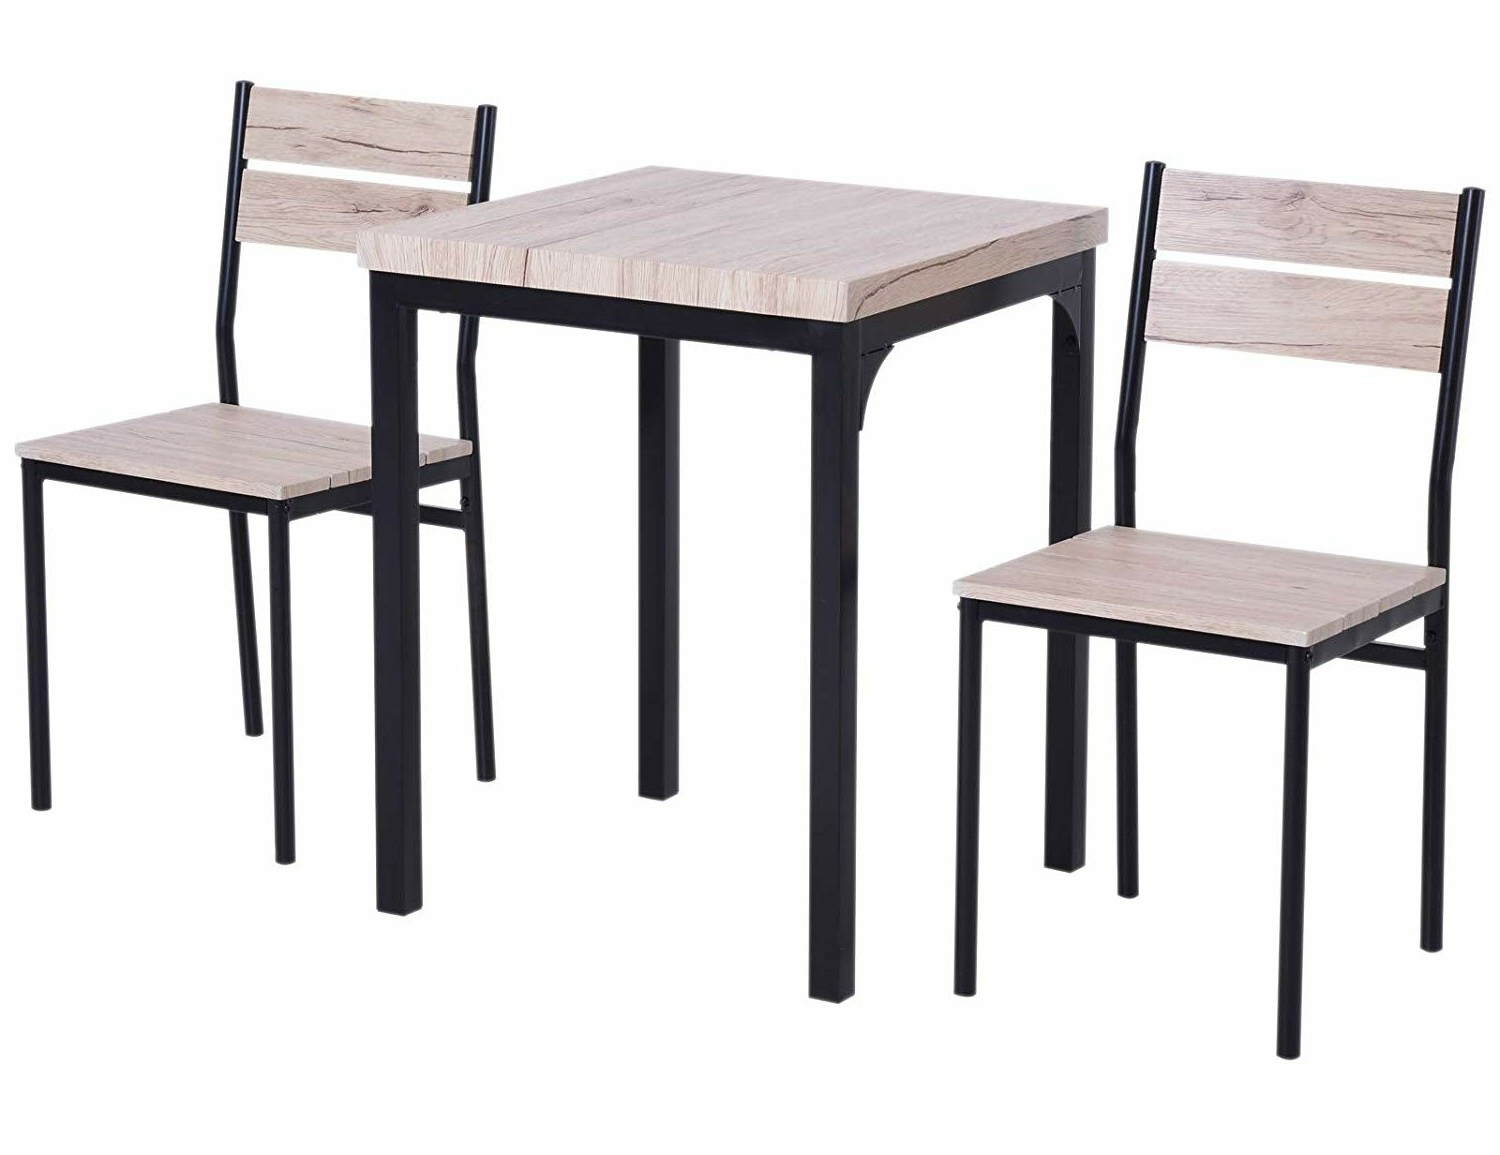 Biggs 5 Piece Counter Height Solid Wood Dining Sets (Set Of 5) Throughout Preferred Gracie Oaks Staley Rustic Country 3 Piece Dining Set (View 16 of 25)